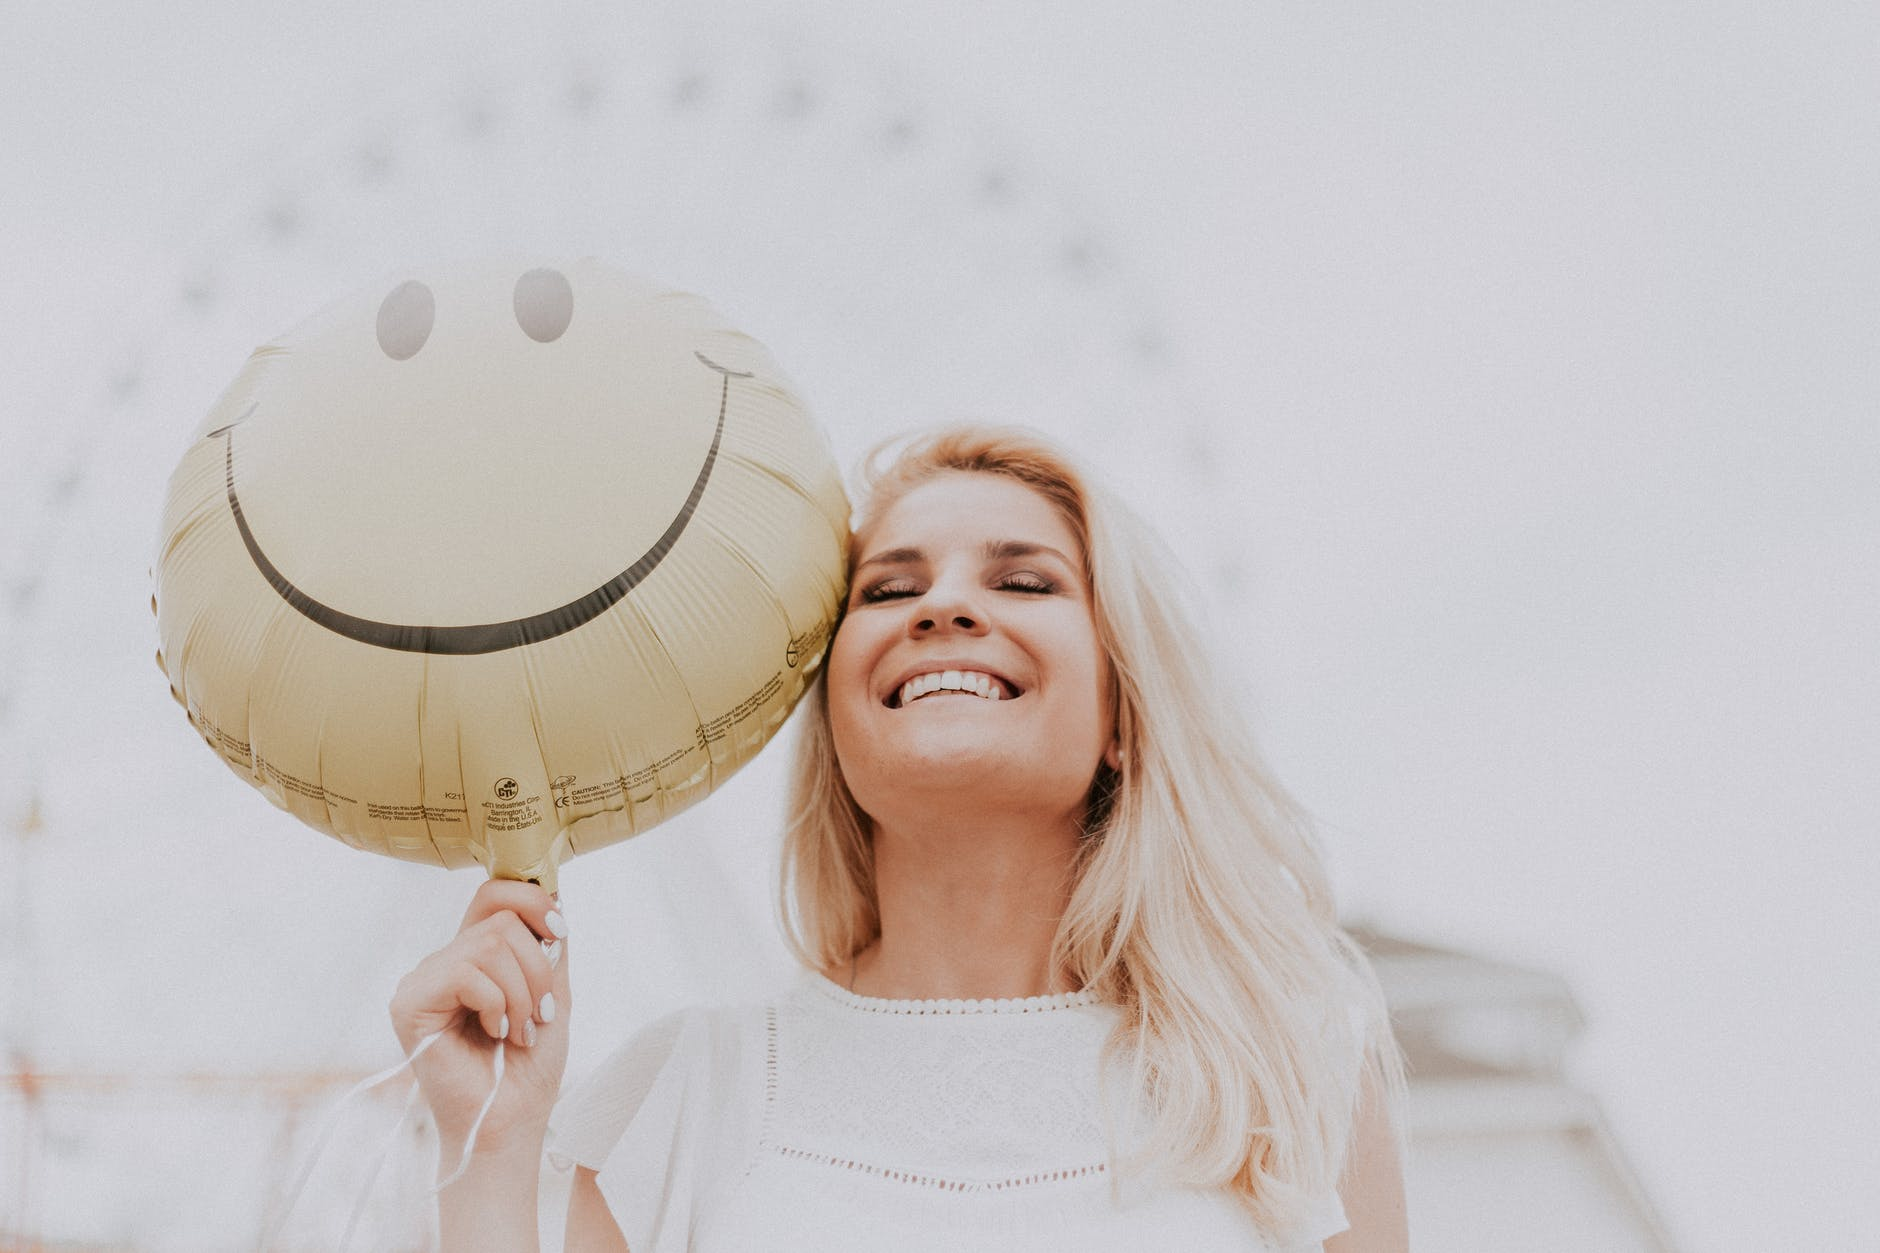 TRAIN YOUR BRAIN TO HAVE A MORE POSITIVE ATTITUDE